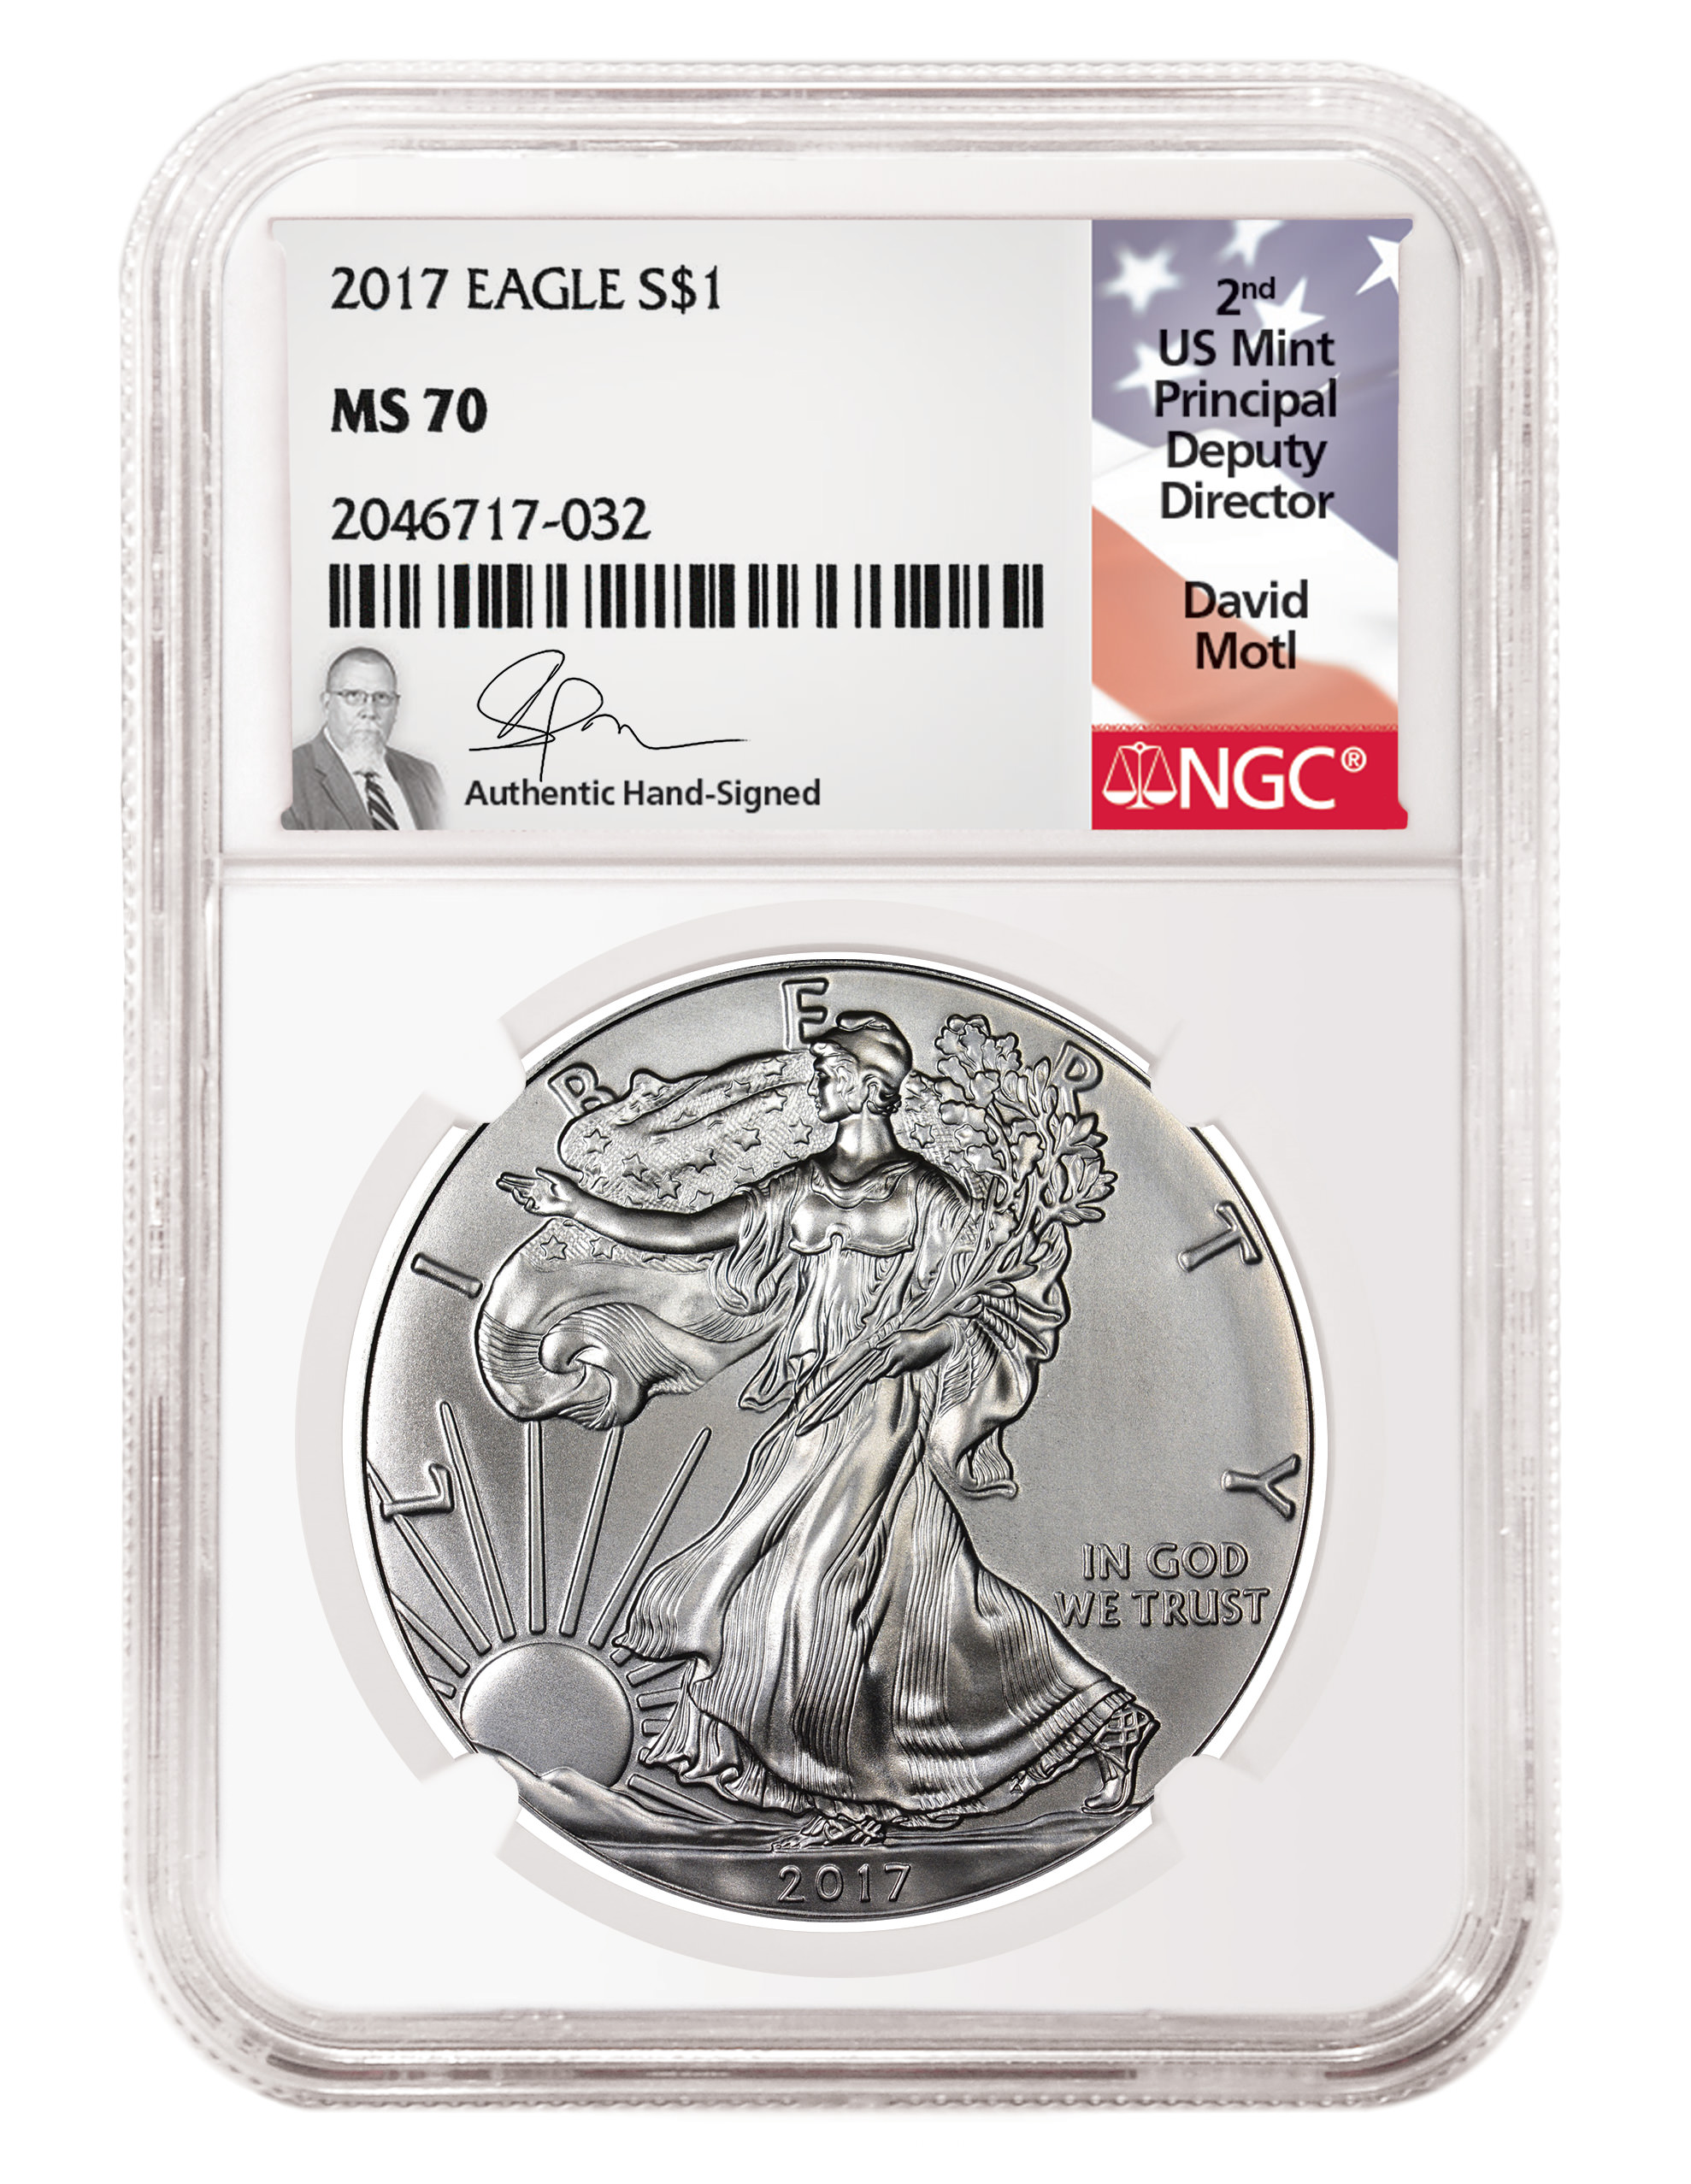 main image for David Motl, Former Chief Administrative Officer / Acting Principal Deputy Director of the US Mint, Agrees to Exclusive NGC Signature Label Deal